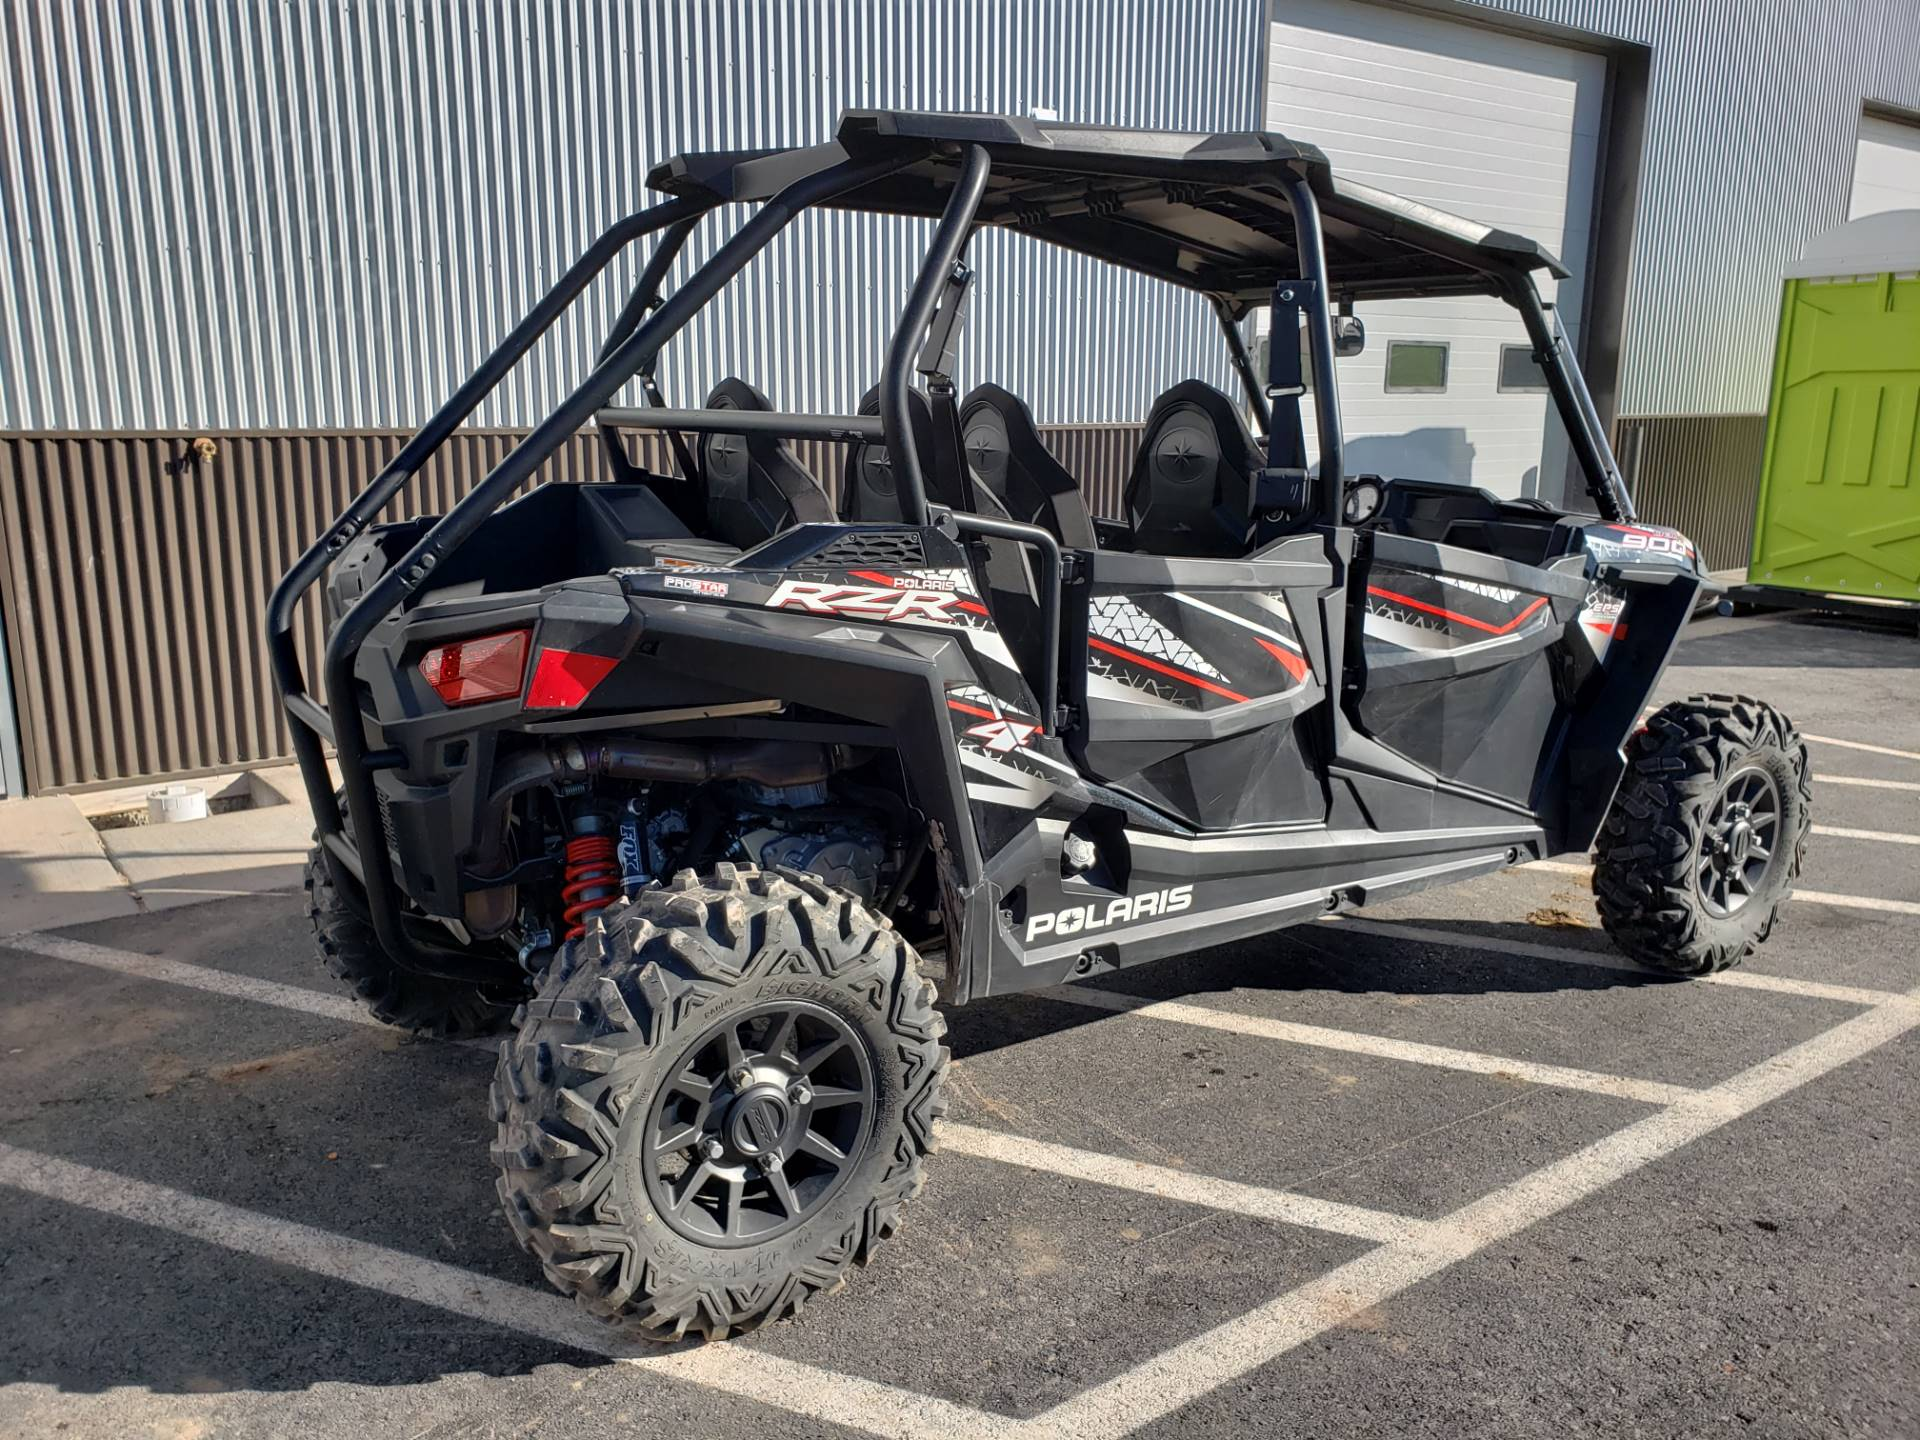 2017 Polaris RZR 4 900 EPS 9